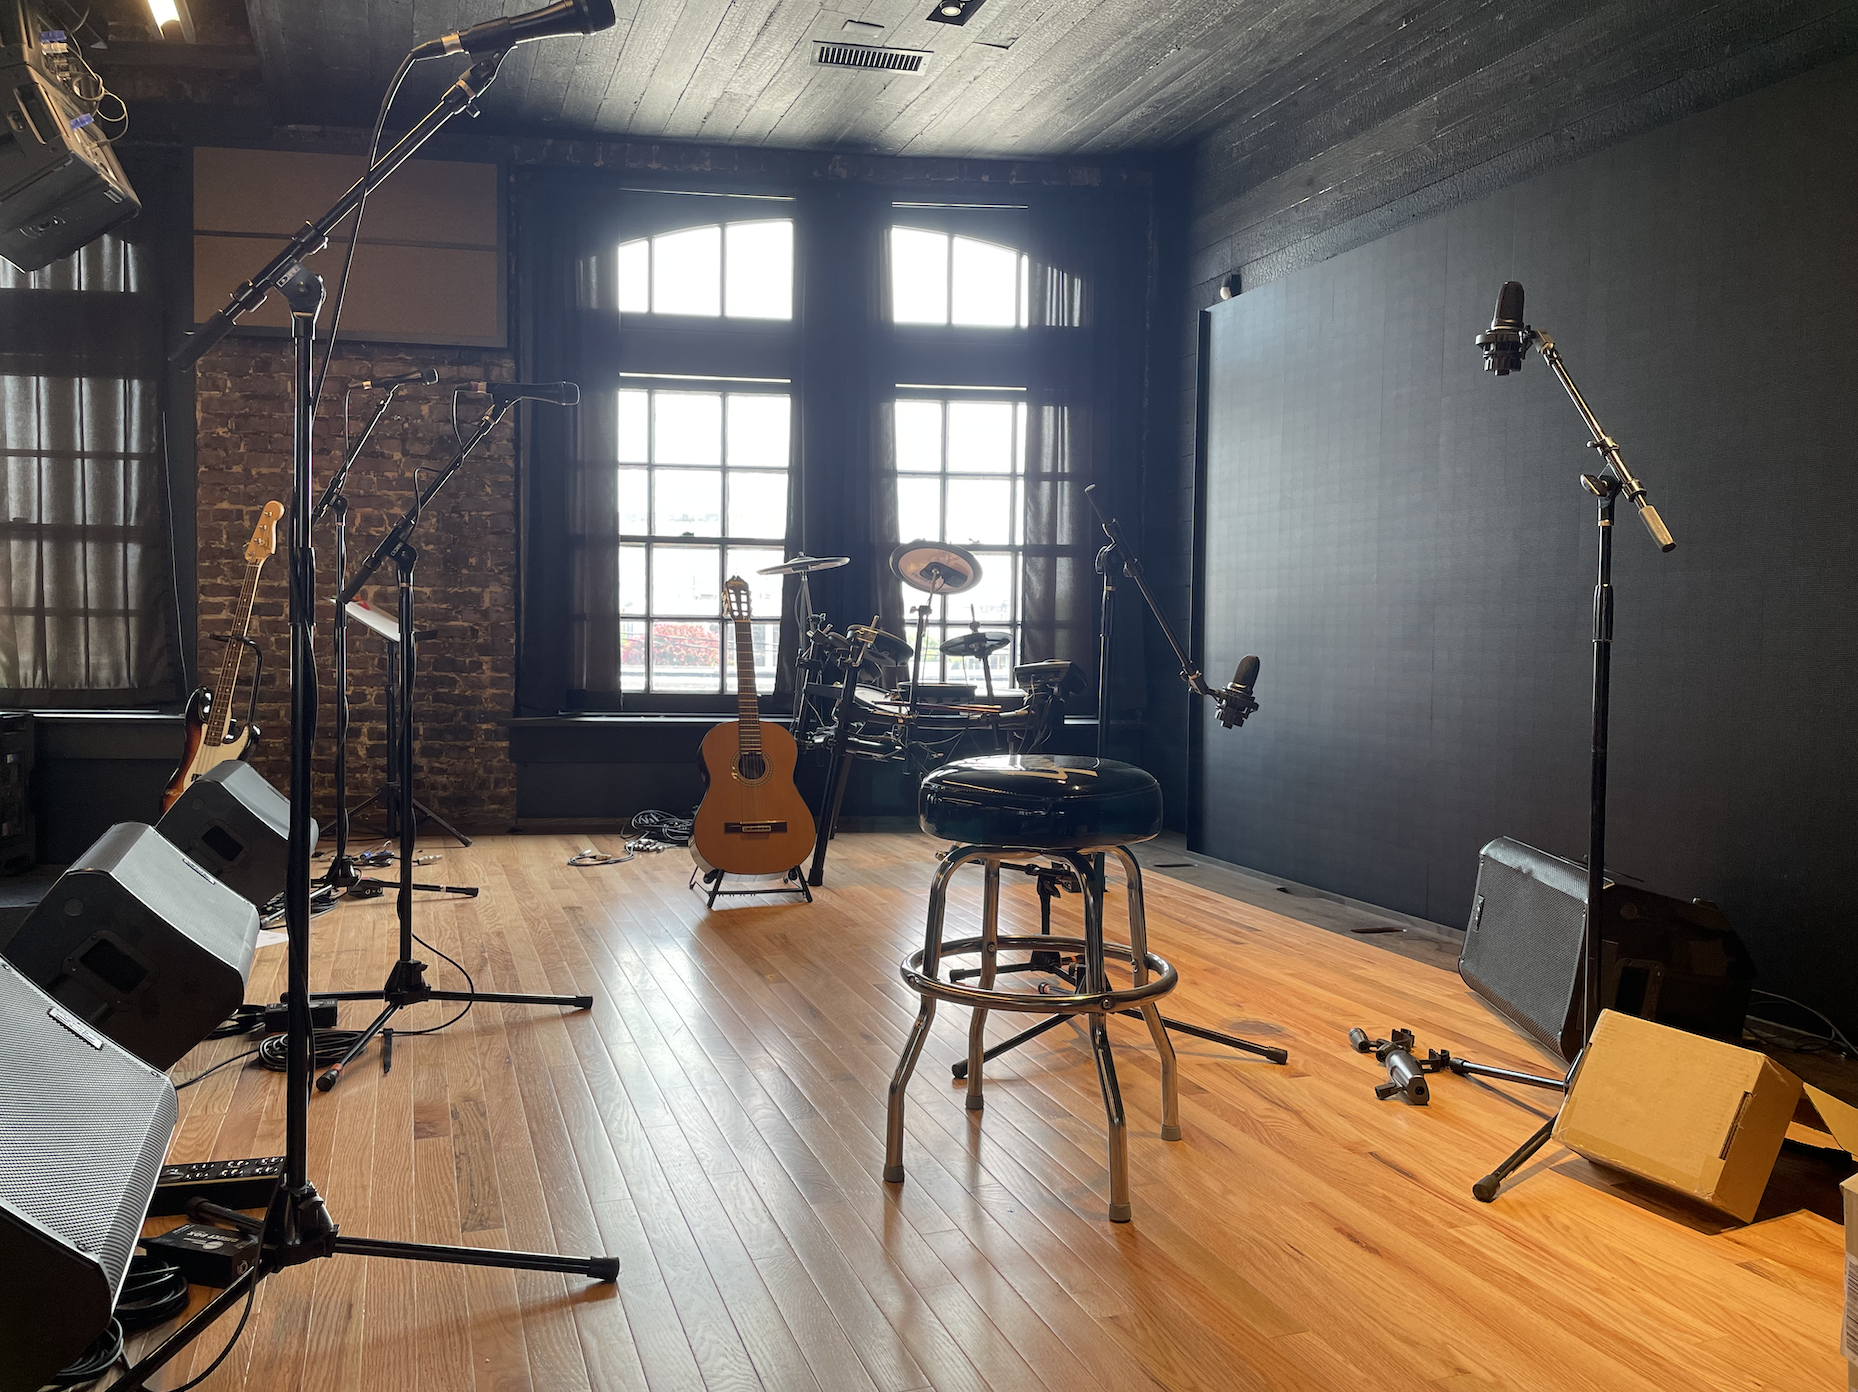 Photo of a wooden stage with a stool, drum set, guitar, and several mics + amps scattered across it.